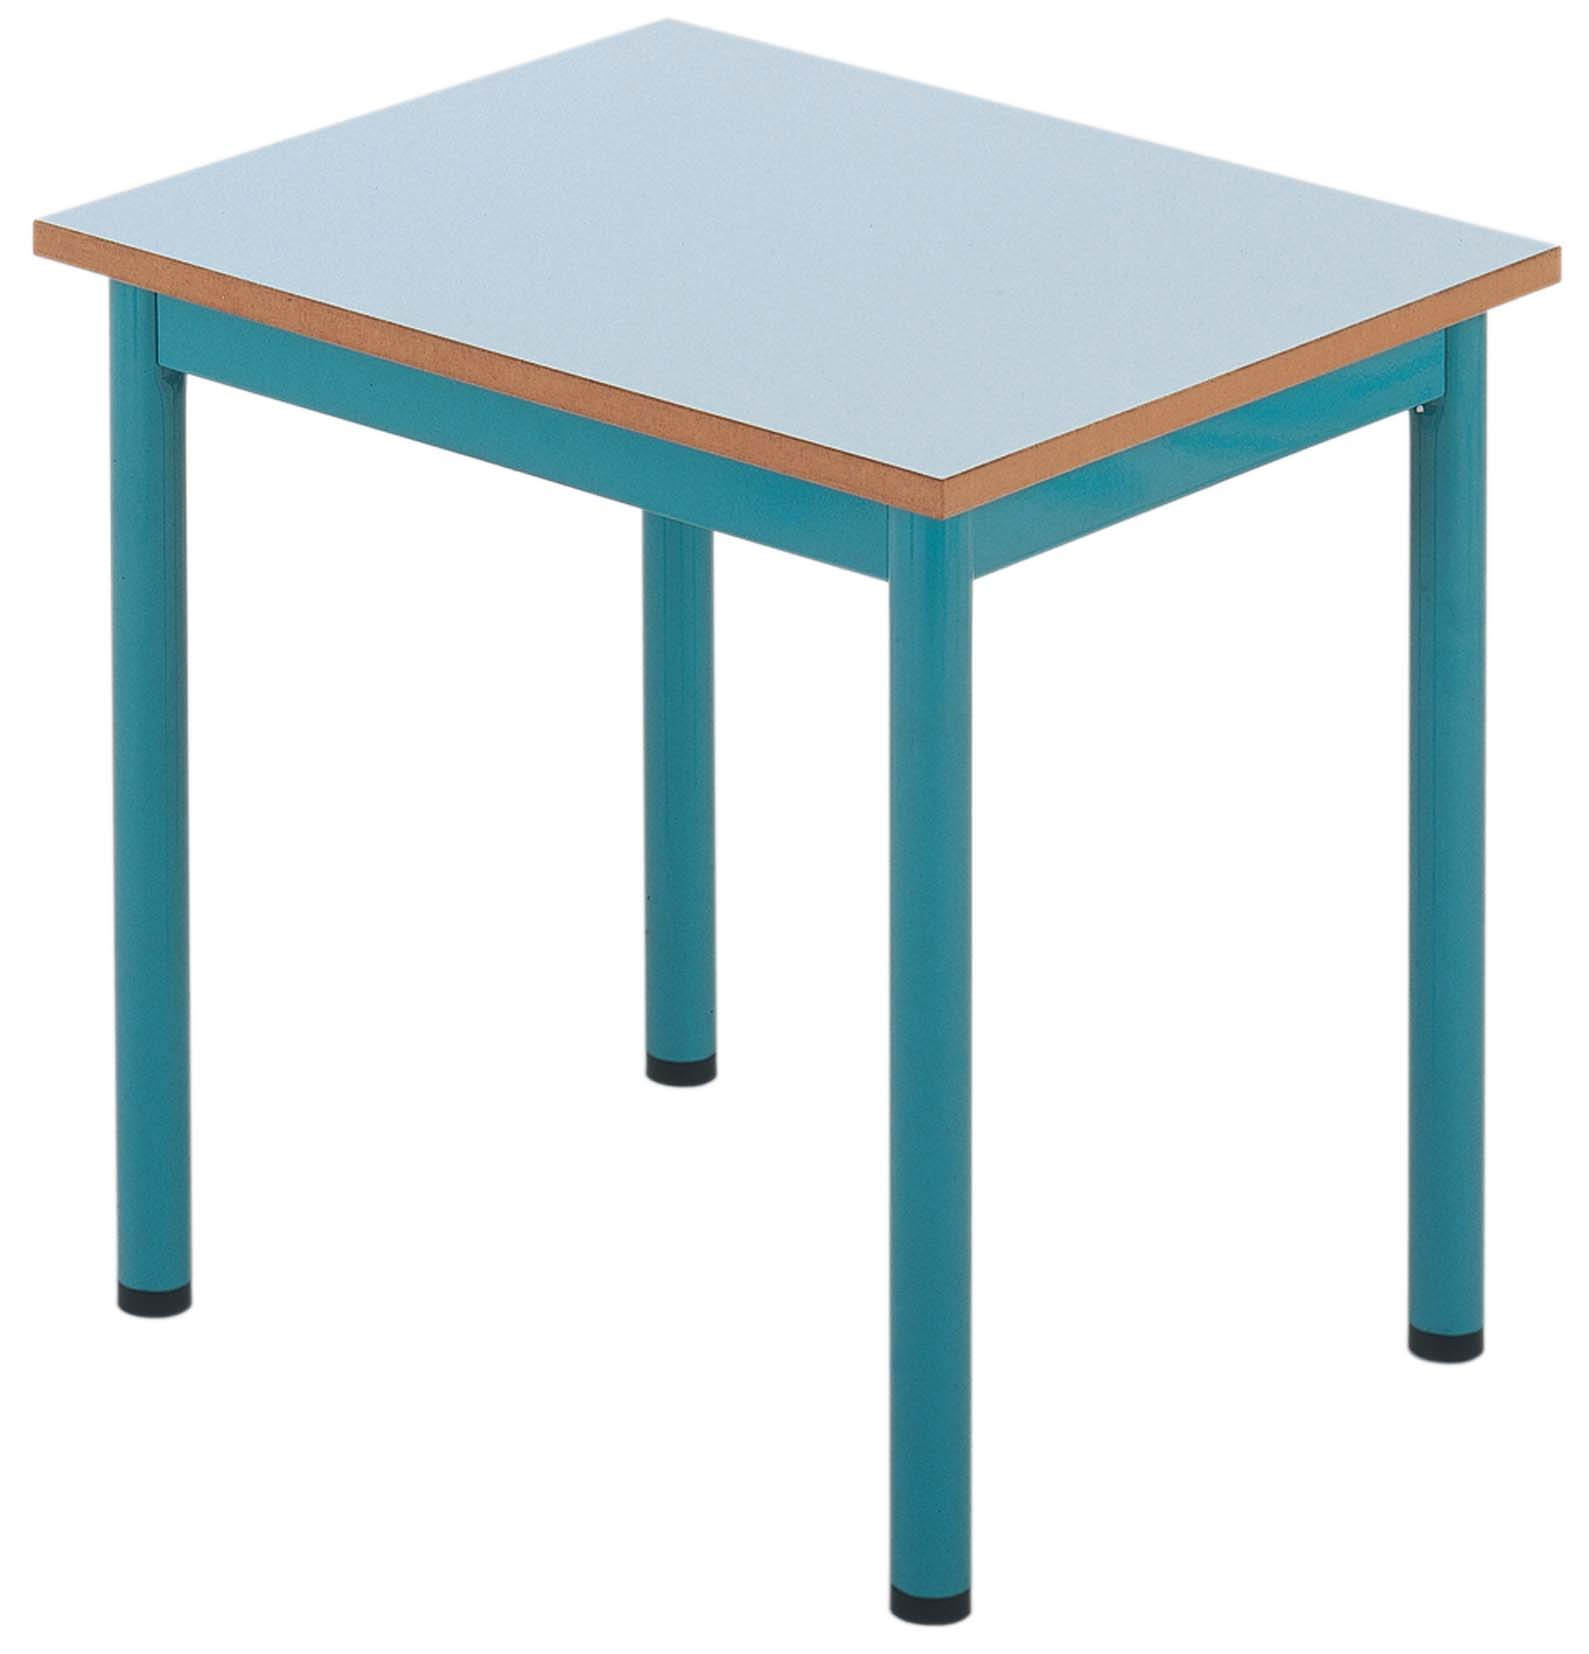 Table maternelle fixe prof. 50 ou 60 cm. - photo 2